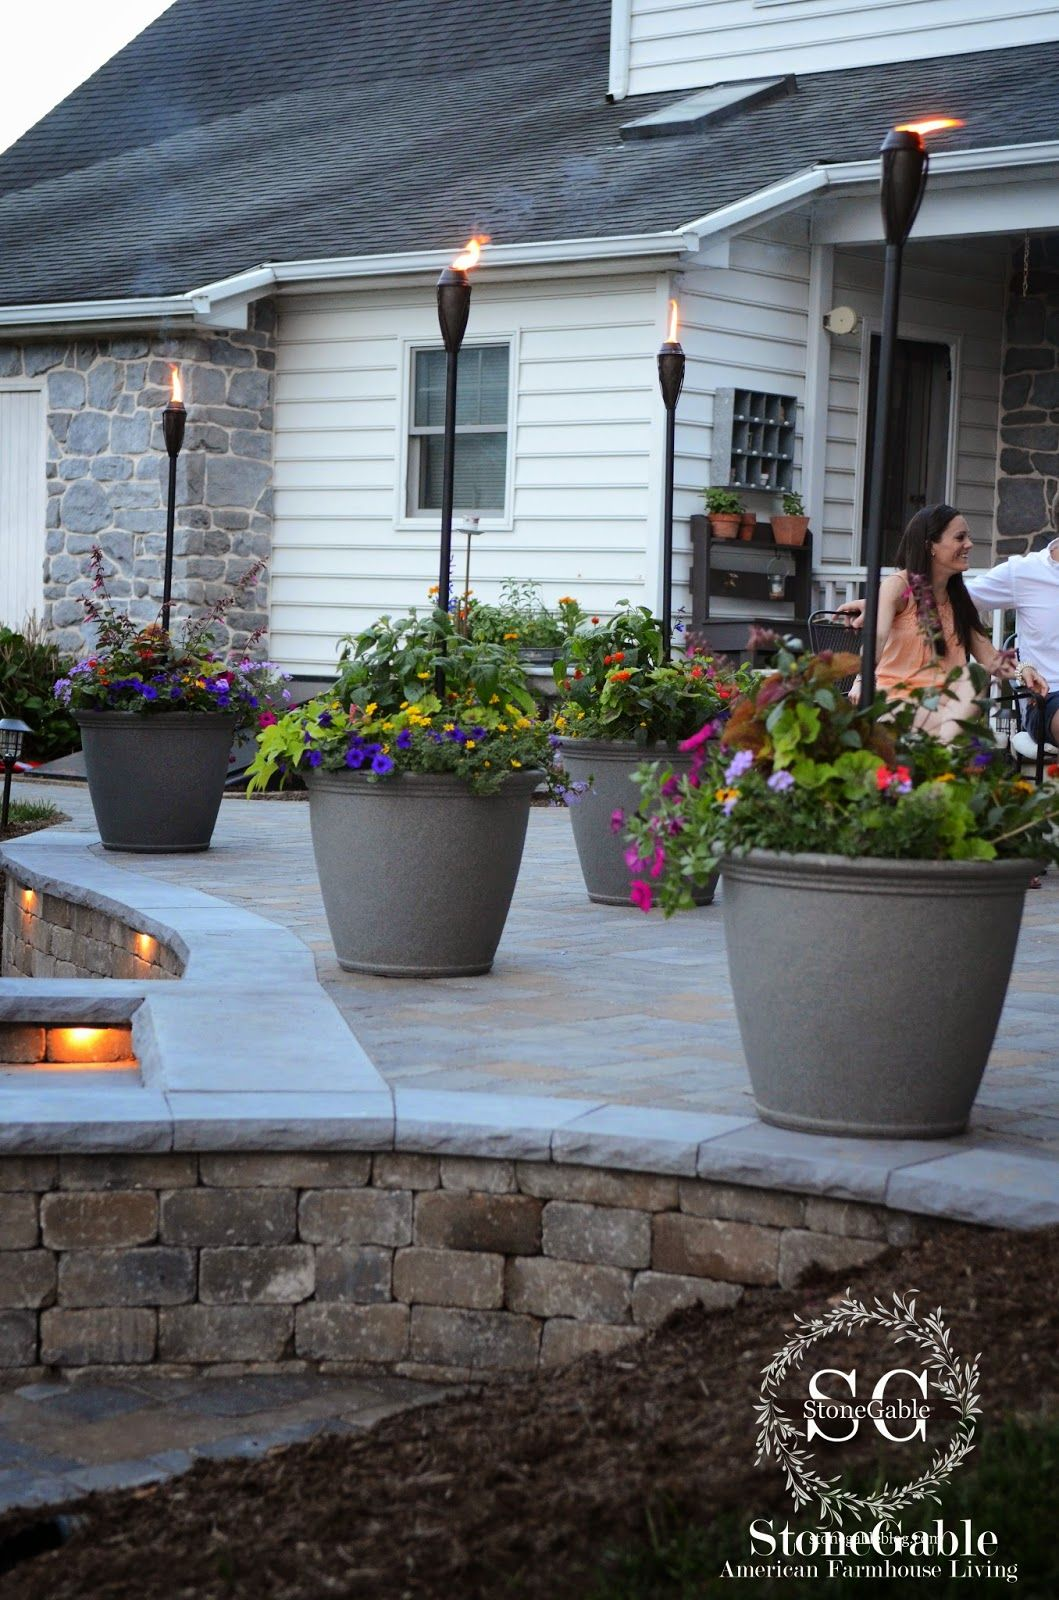 10 Wonderful And Cheap Diy Idea For Your Garden 1 Backyard Patio Outdoor Gardens Backyard